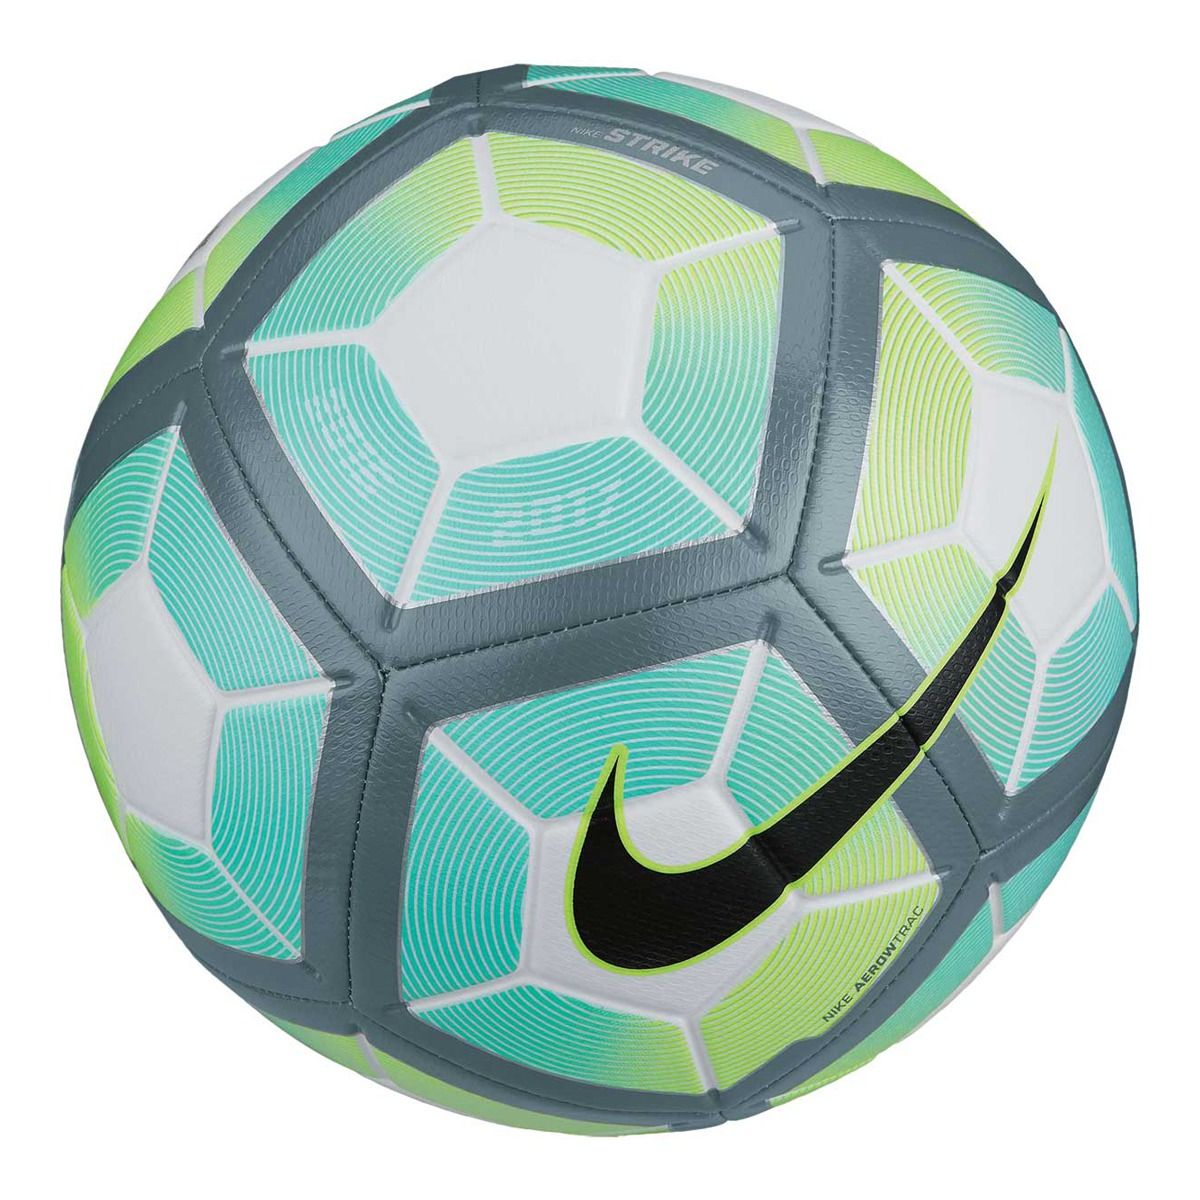 Football, Nike, Gift Ideas, Ballon D'or, Products, Soccer Ball, Wish List,  Futbol, Soccer